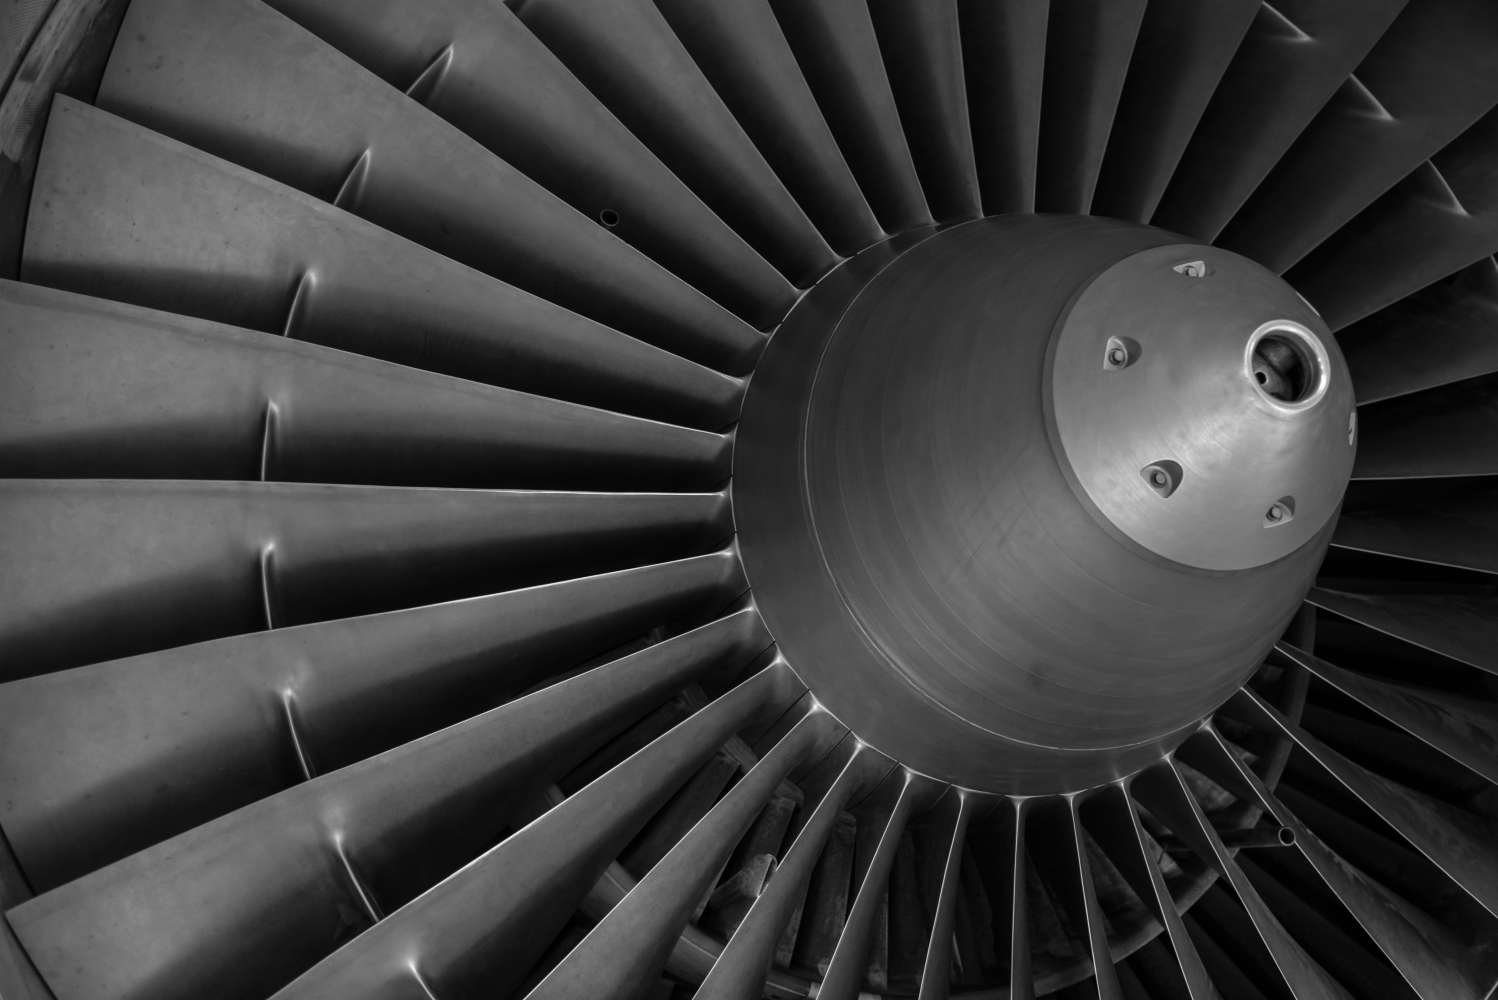 Hastelloy, Inconel, Nimonic, Waspaloy...do you know that superalloys? Are the superalloys used in aircraft industry really super?